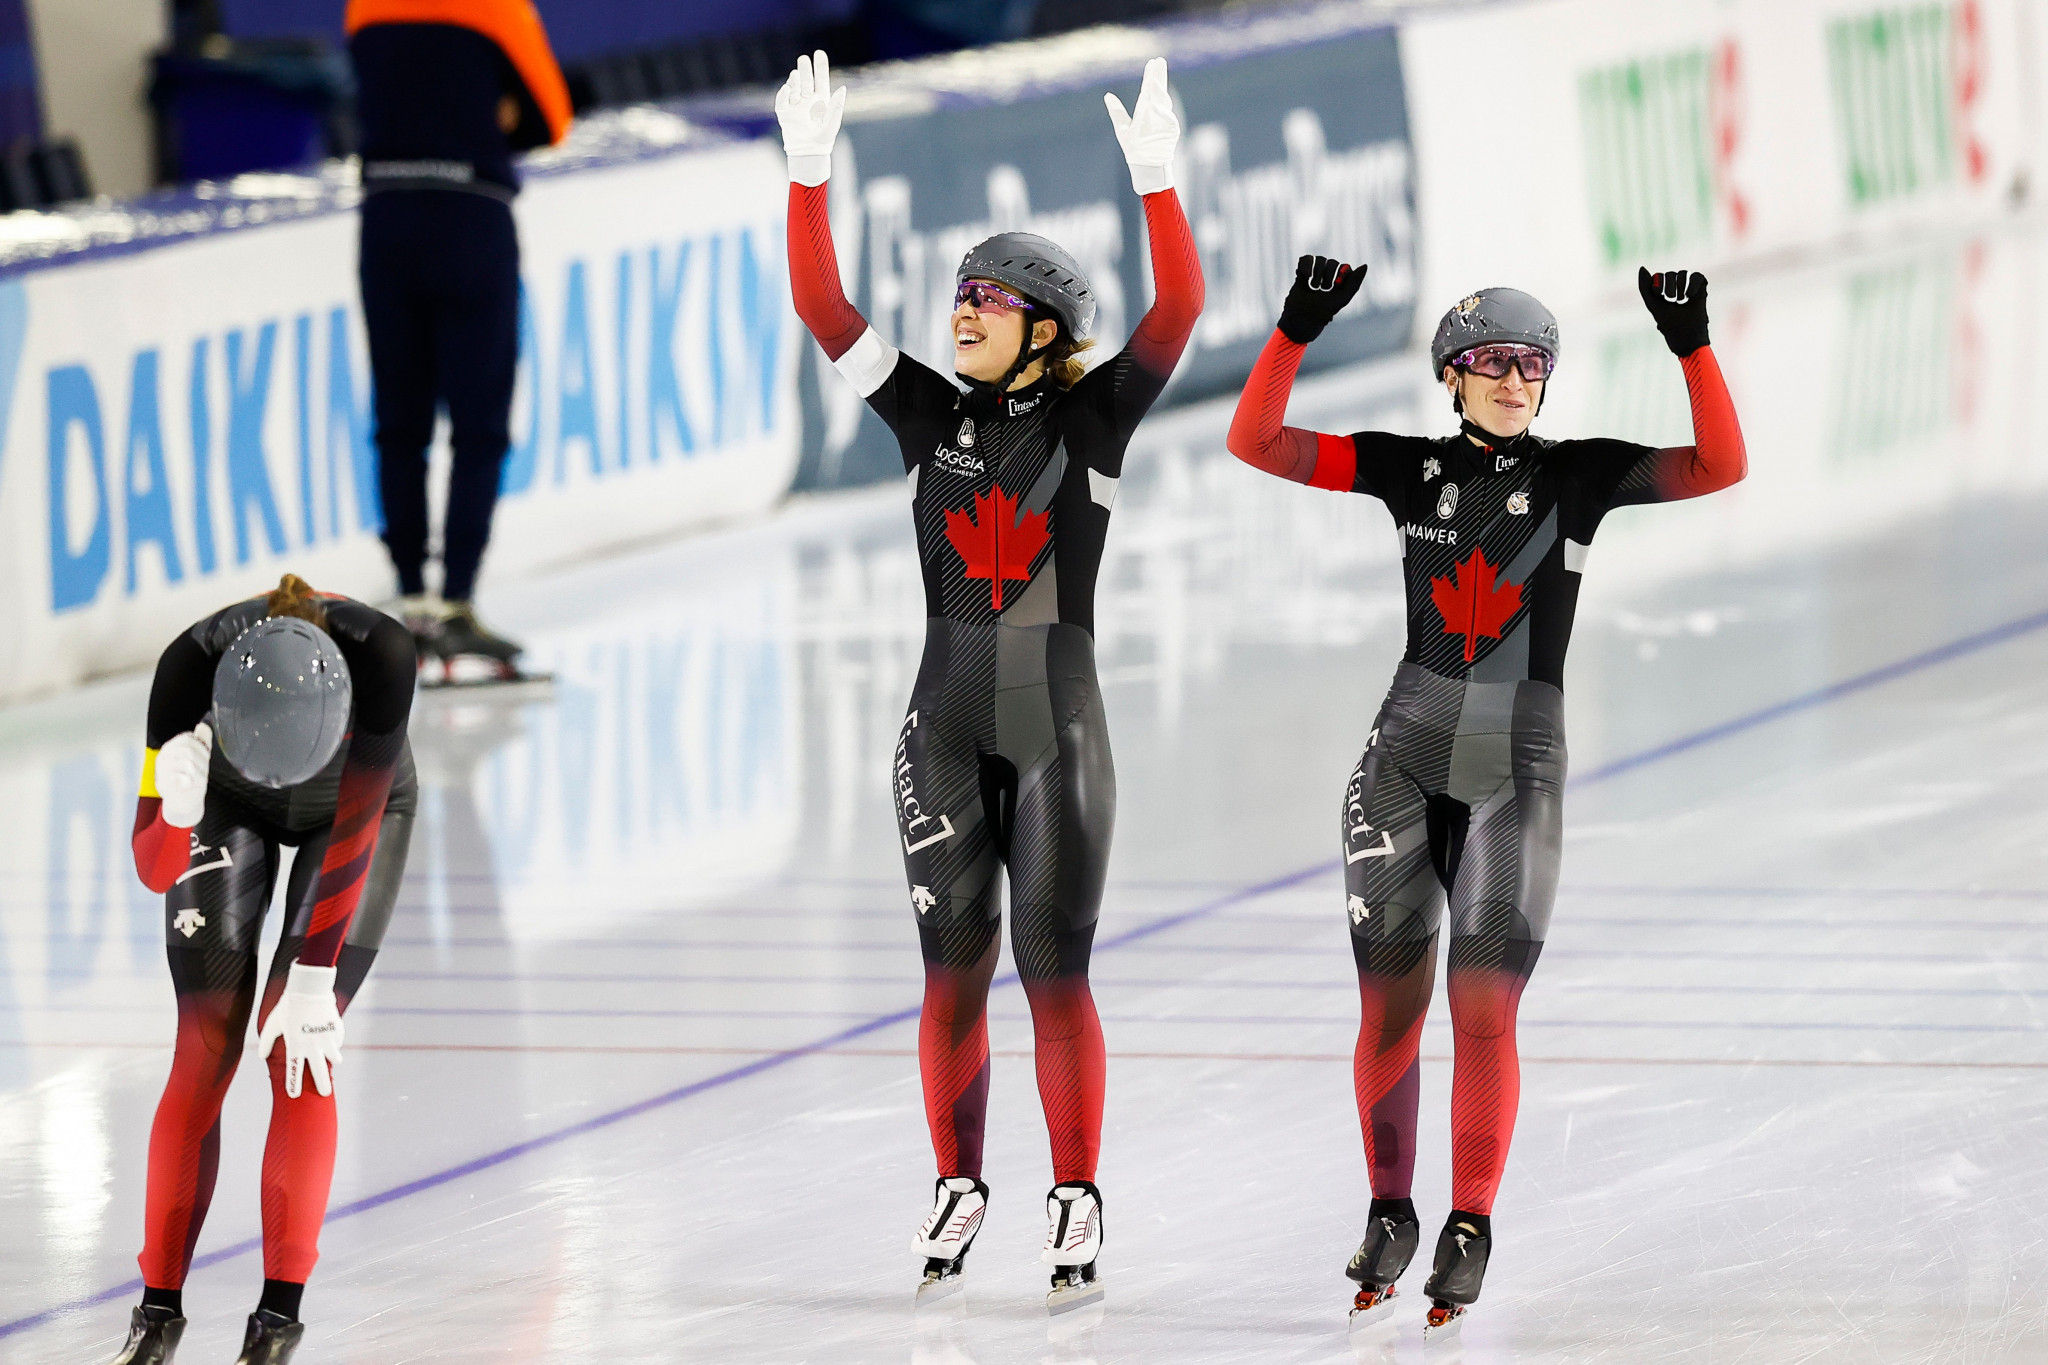 Canada women set team pursuit track record at Heerenveen Speed Skating World Cup